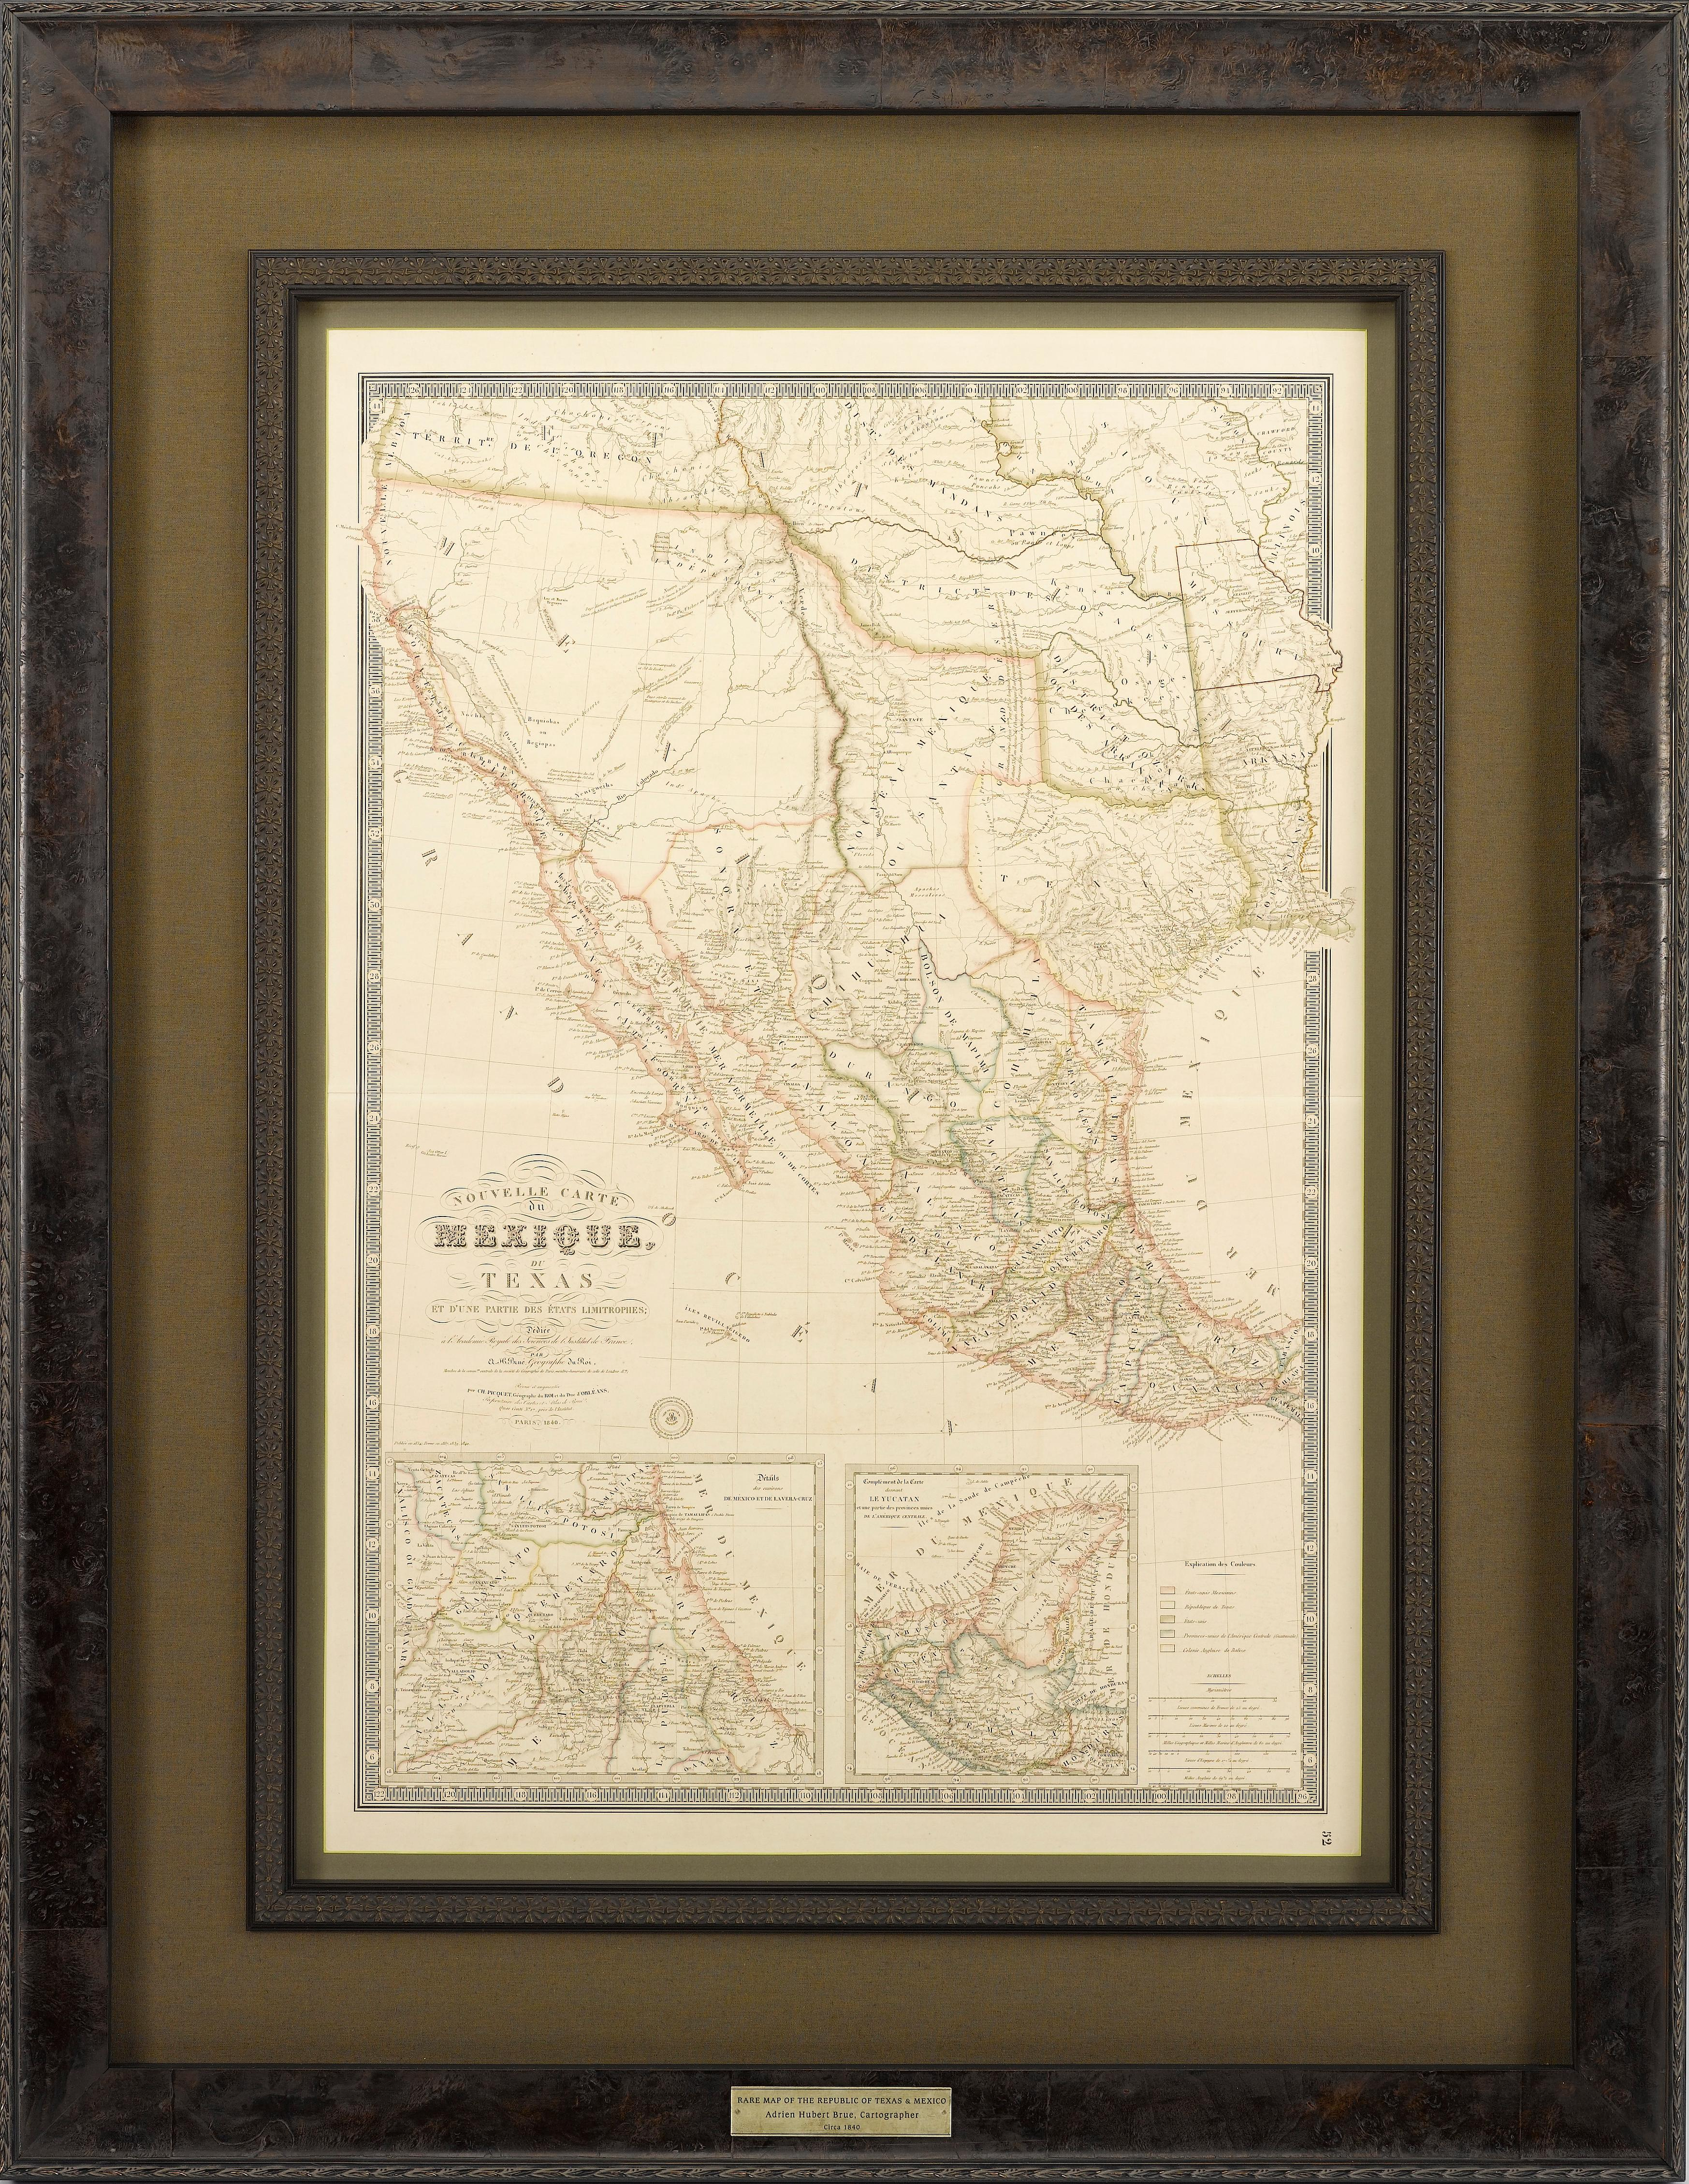 Map Of Texas 1840.Map Of Texas And Mexico In French Depicting Texas As A Republic Circa 1840